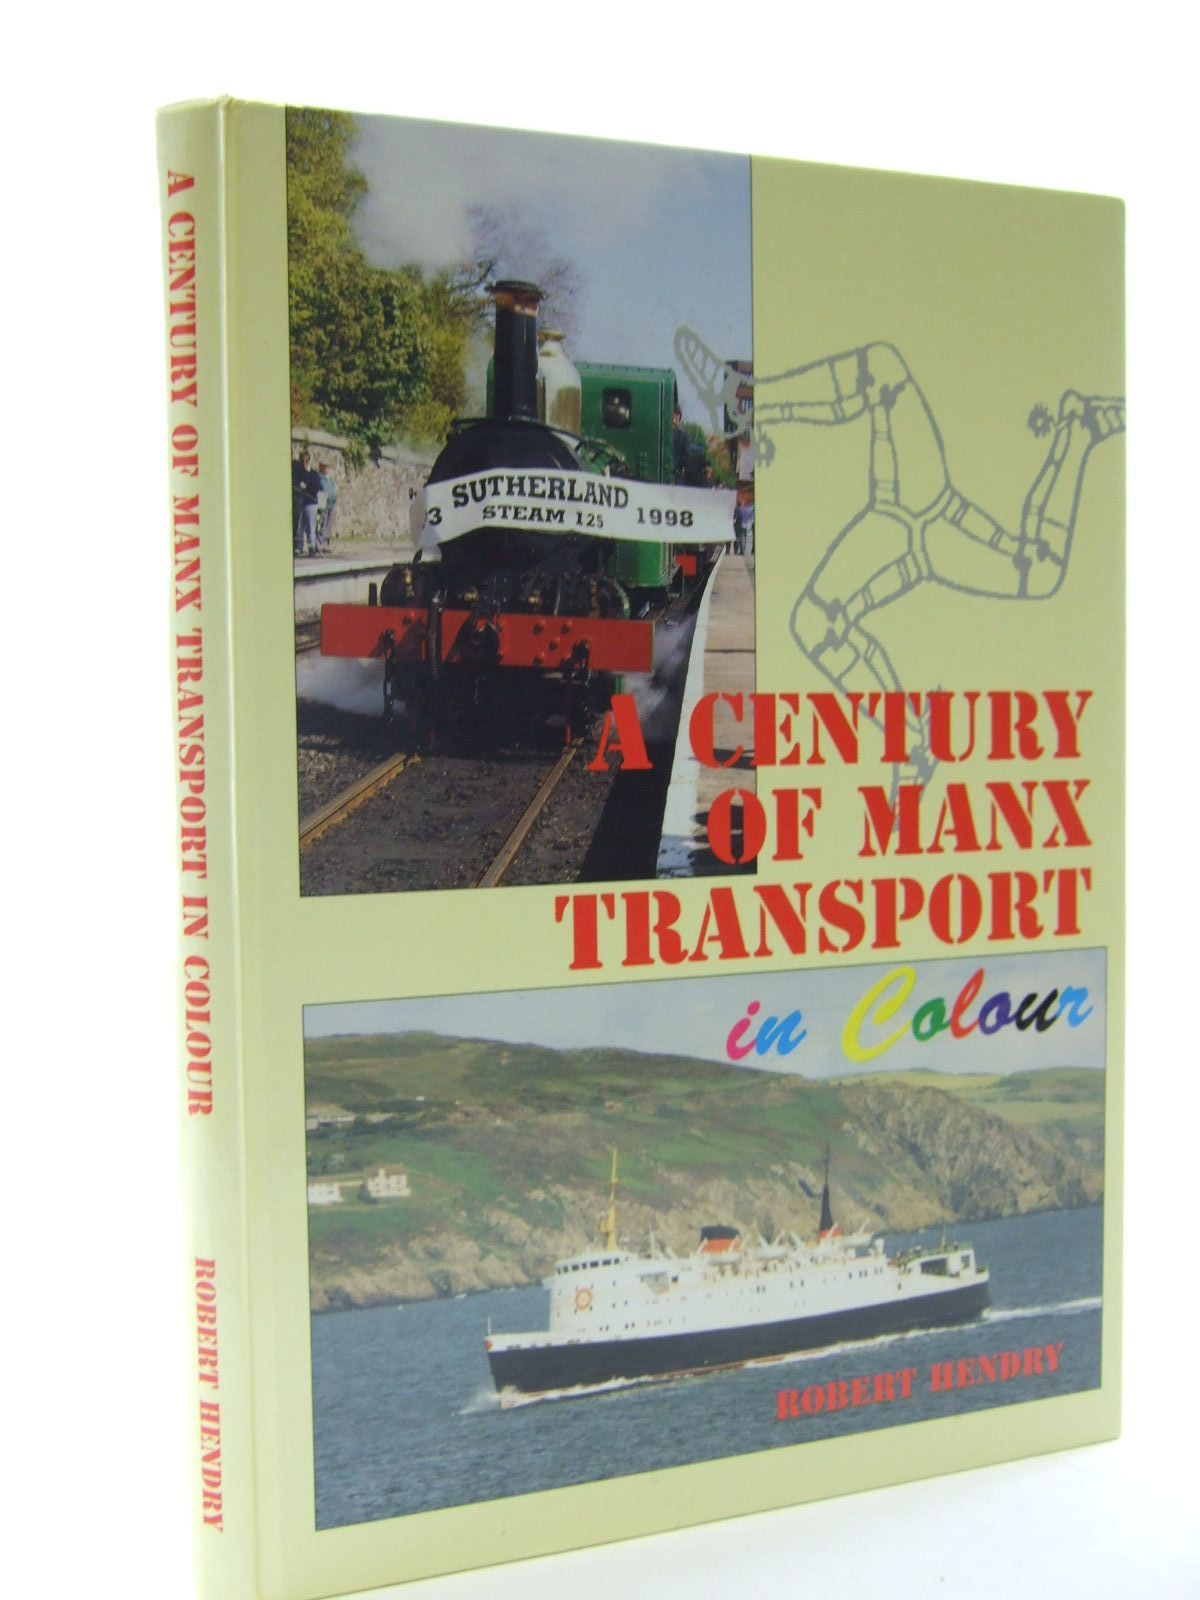 Photo of A CENTURY OF MANX TRANSPORT IN COLOUR written by Hendry, Robert Powell published by The Manx Experience (STOCK CODE: 2108415)  for sale by Stella & Rose's Books